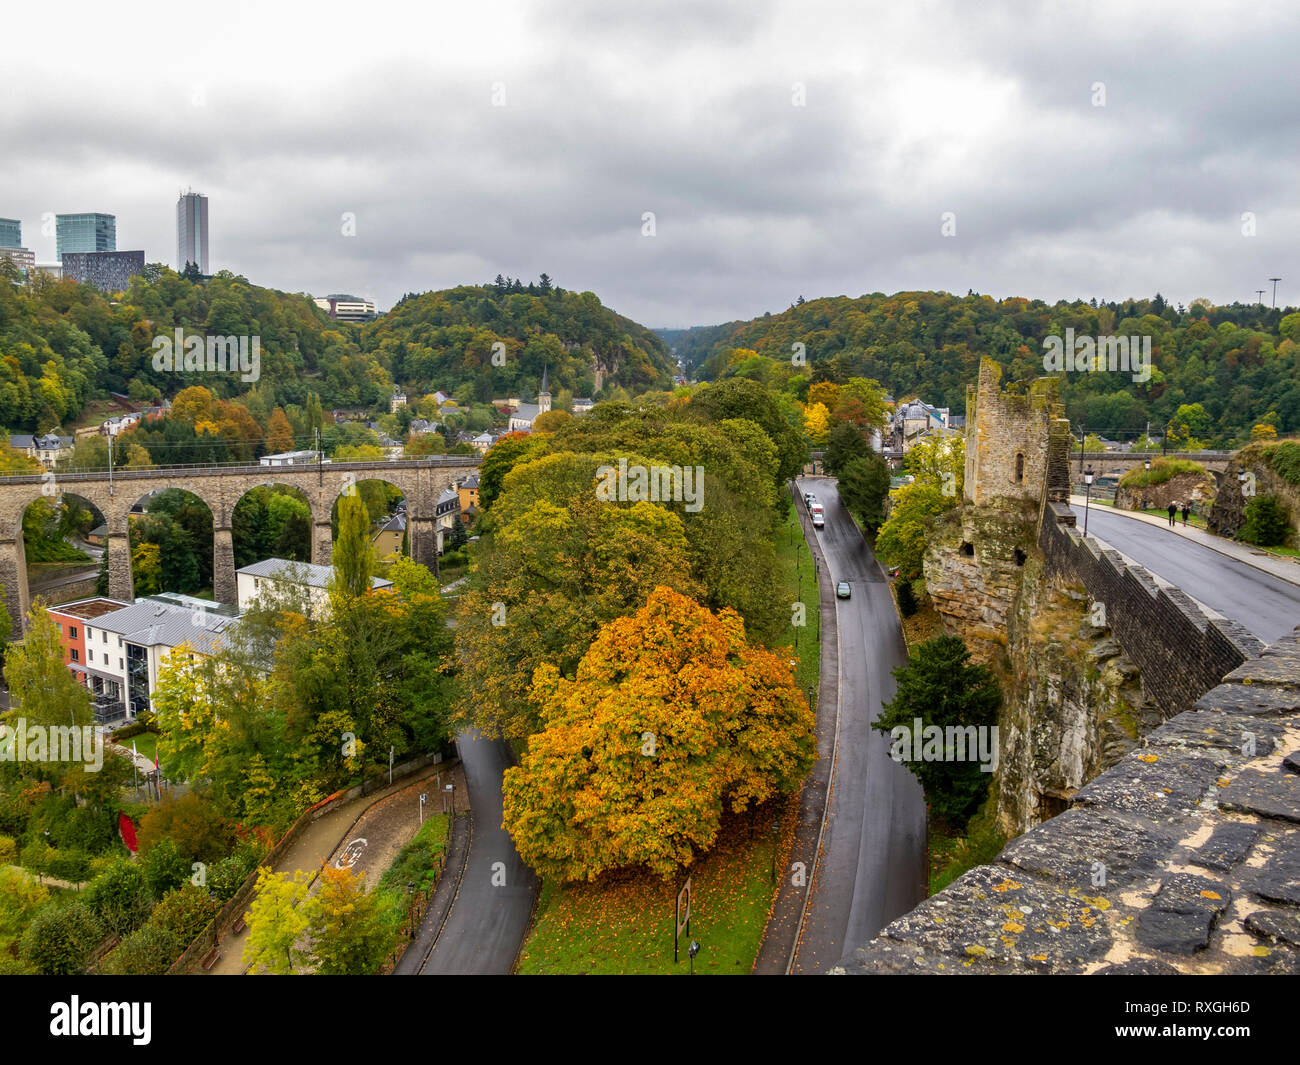 View to the Hollow Tooth - the ruins of a tower of one of the fortress gates in Luxembourg City, Grand Duchy of Luxembourg and the Passerelle on a rai - Stock Image